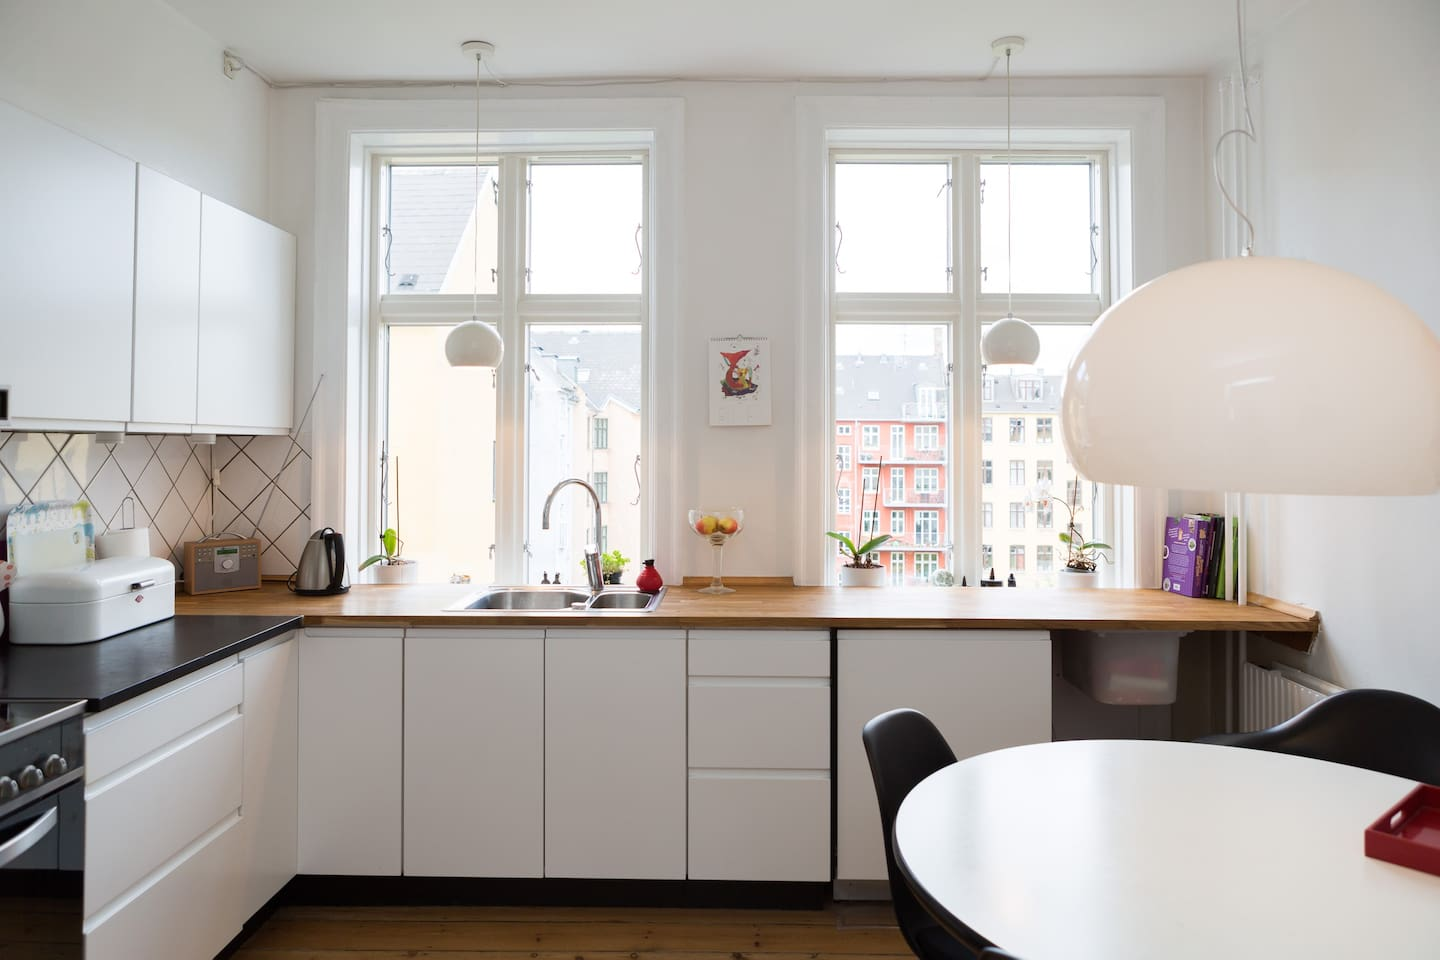 Large kitchen with a wonderful view over the garden